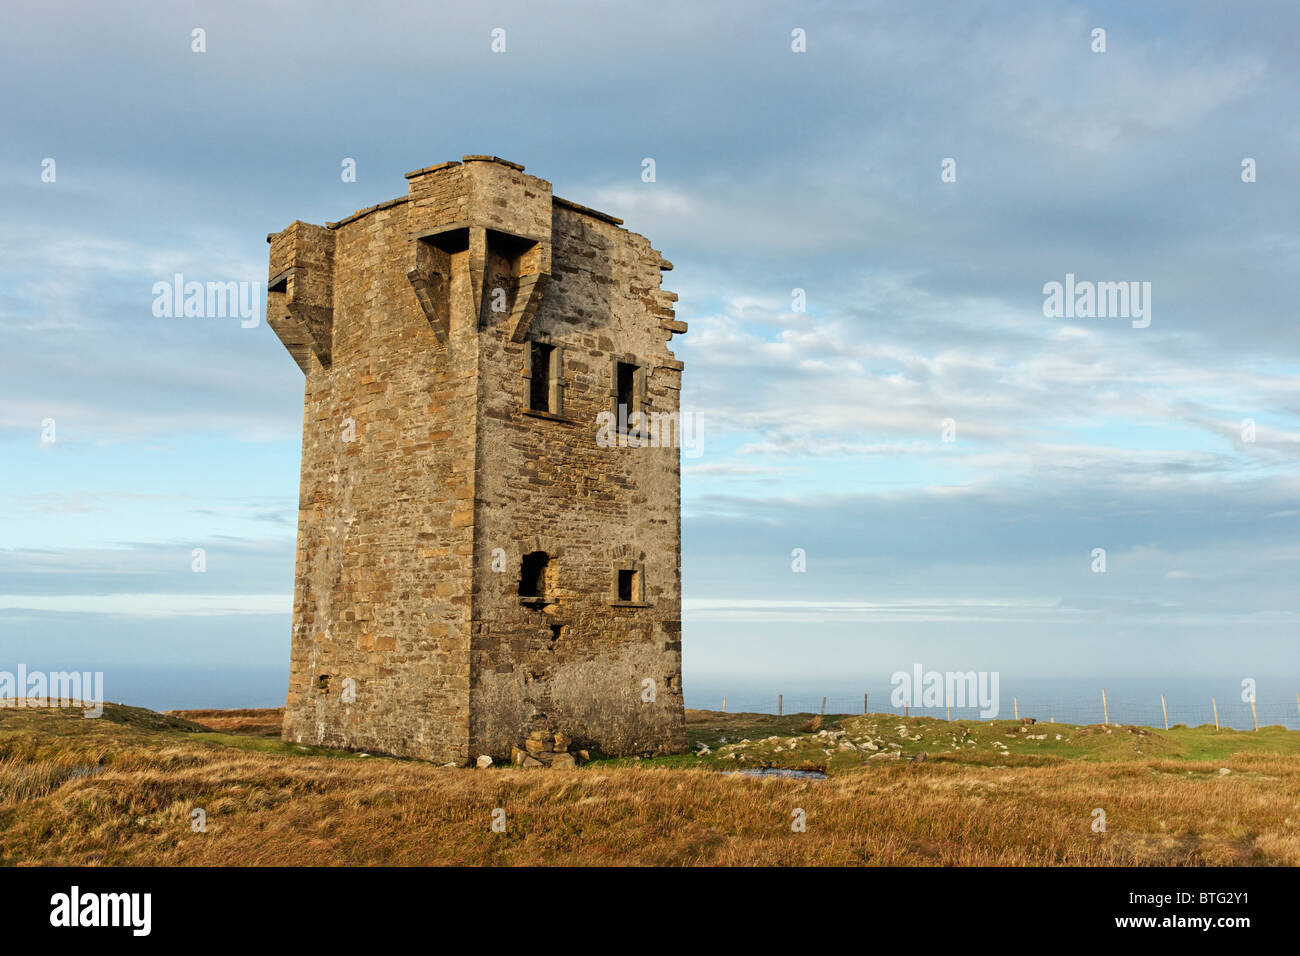 The An Tur Watch Tower above Glencolmcille, County Donegal, Ulster, Ireland. - Stock Image